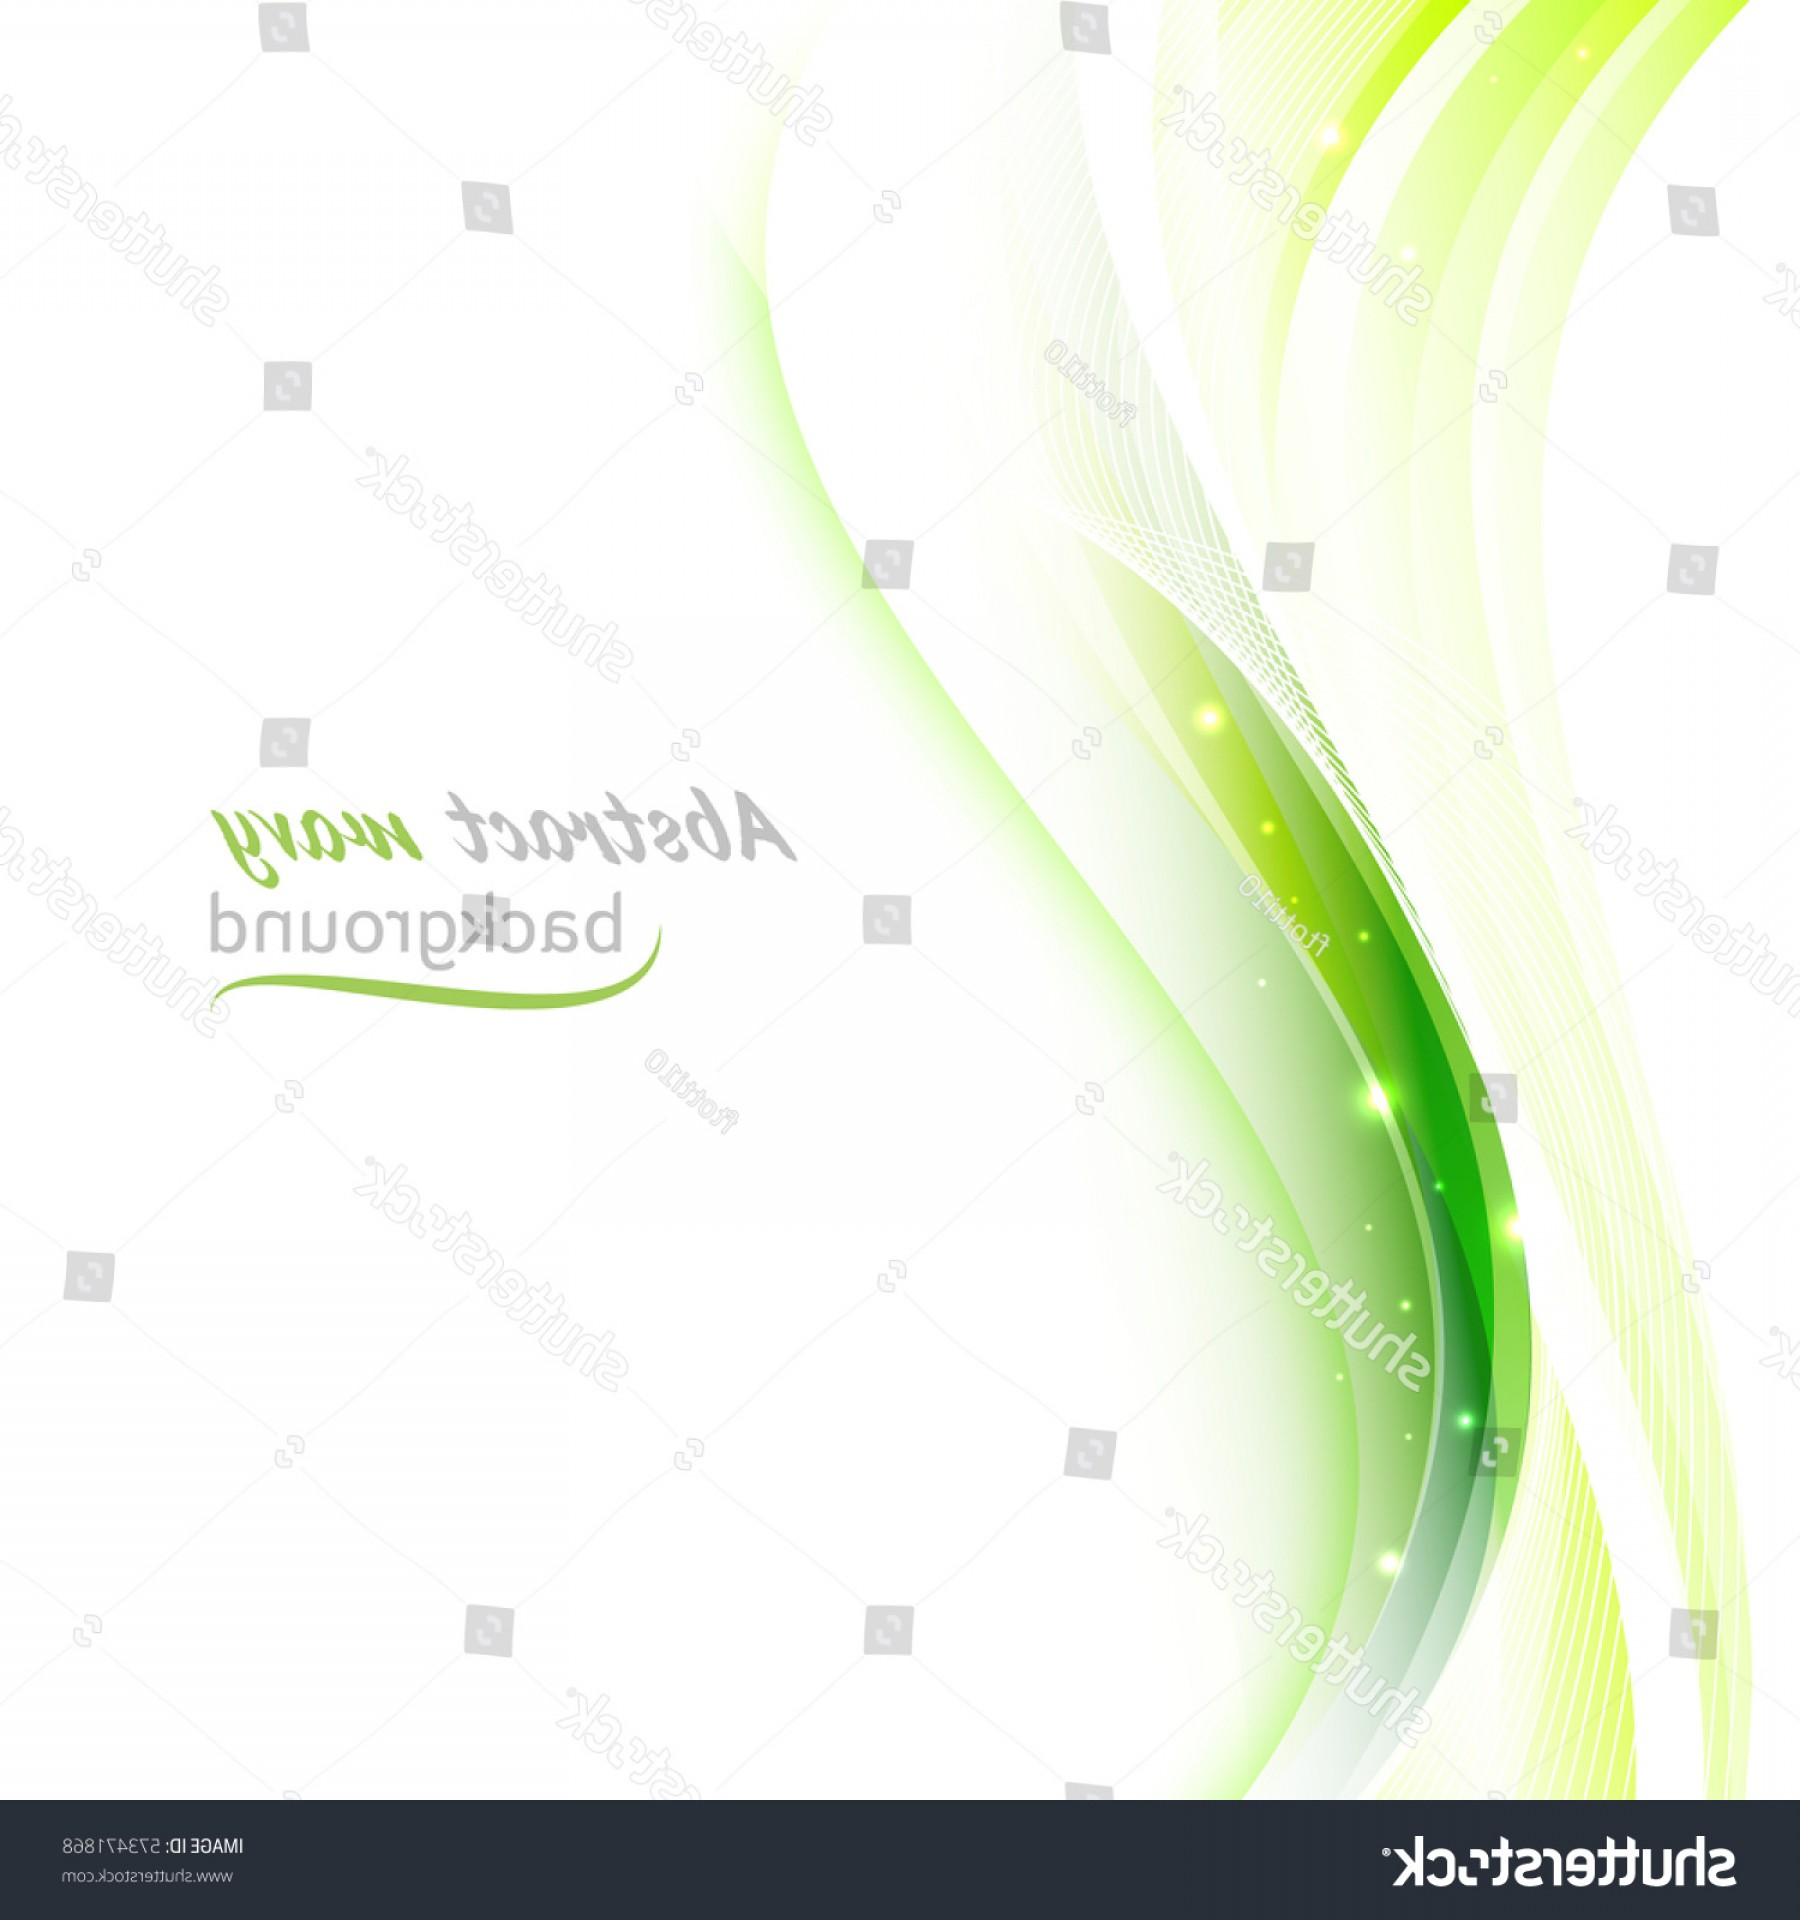 Wavy Line Illustrator Vector: Abstract Background Transparent Green Wavy Lines